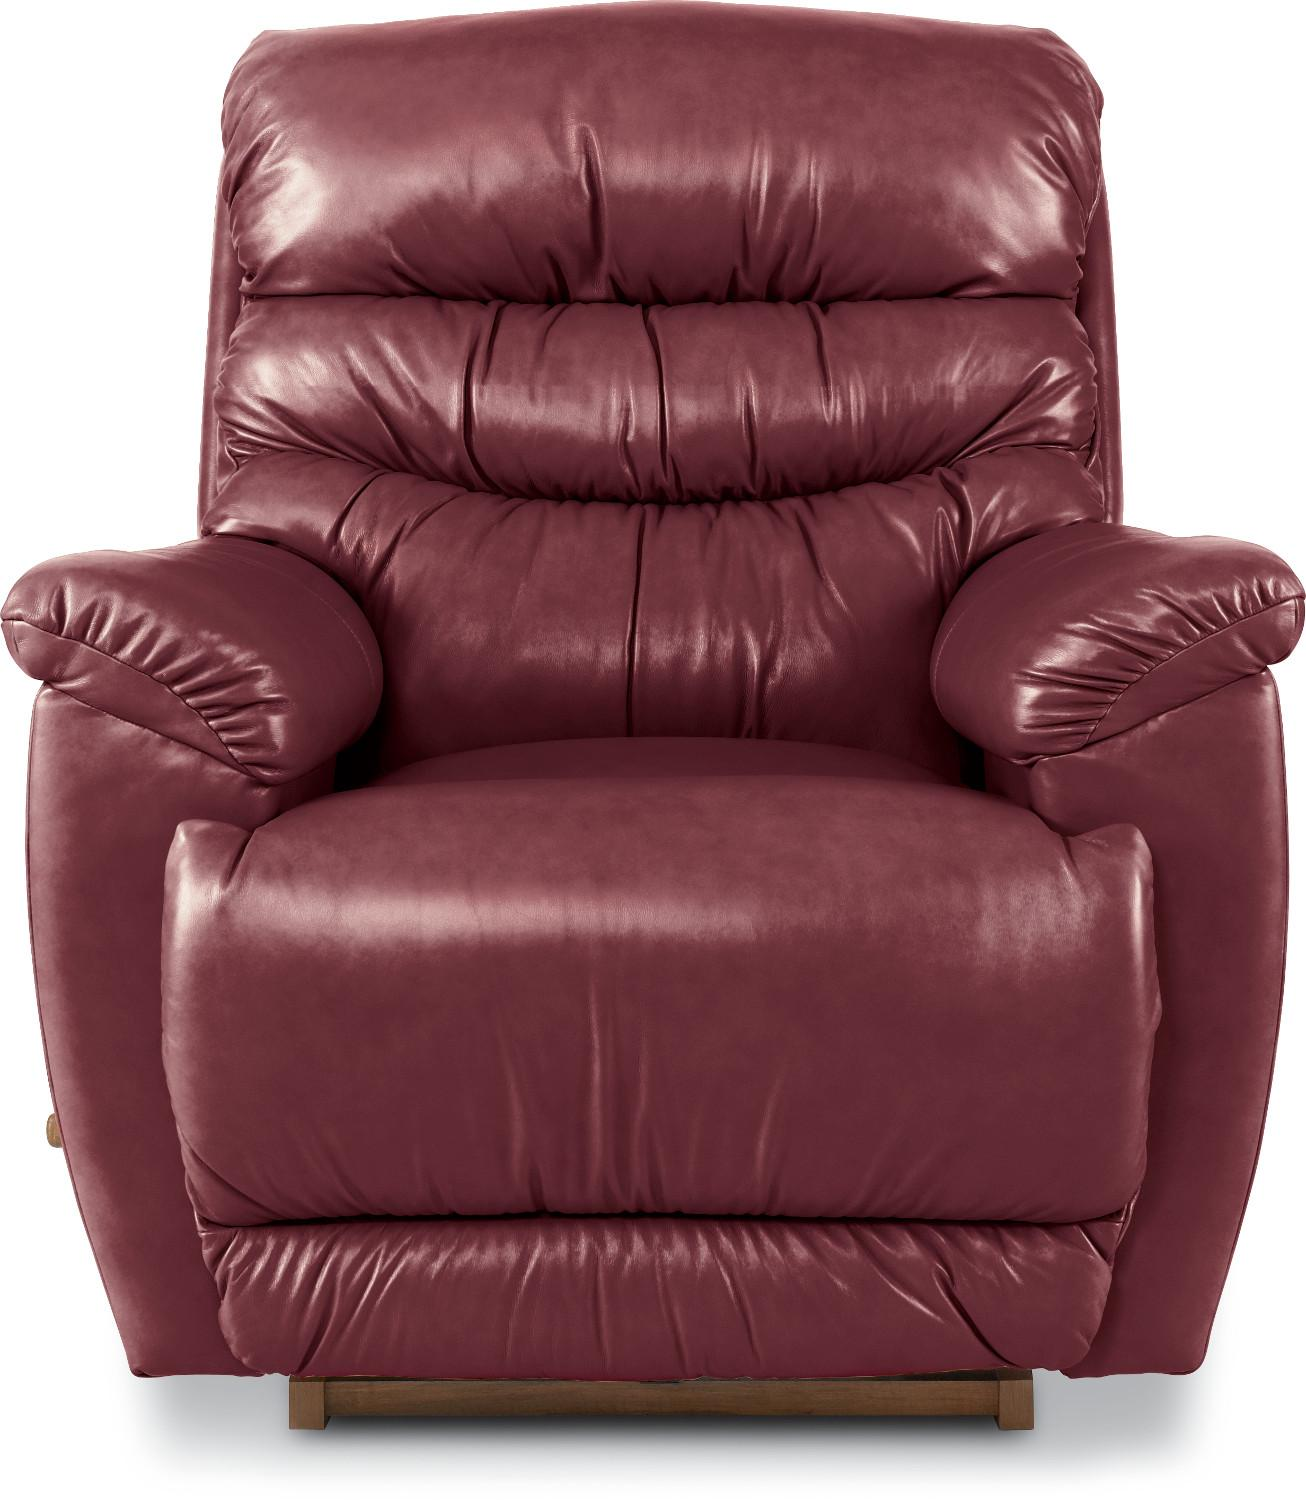 Recliners Joshua Wall Recliner by La-Z-Boy at Novello Home Furnishings